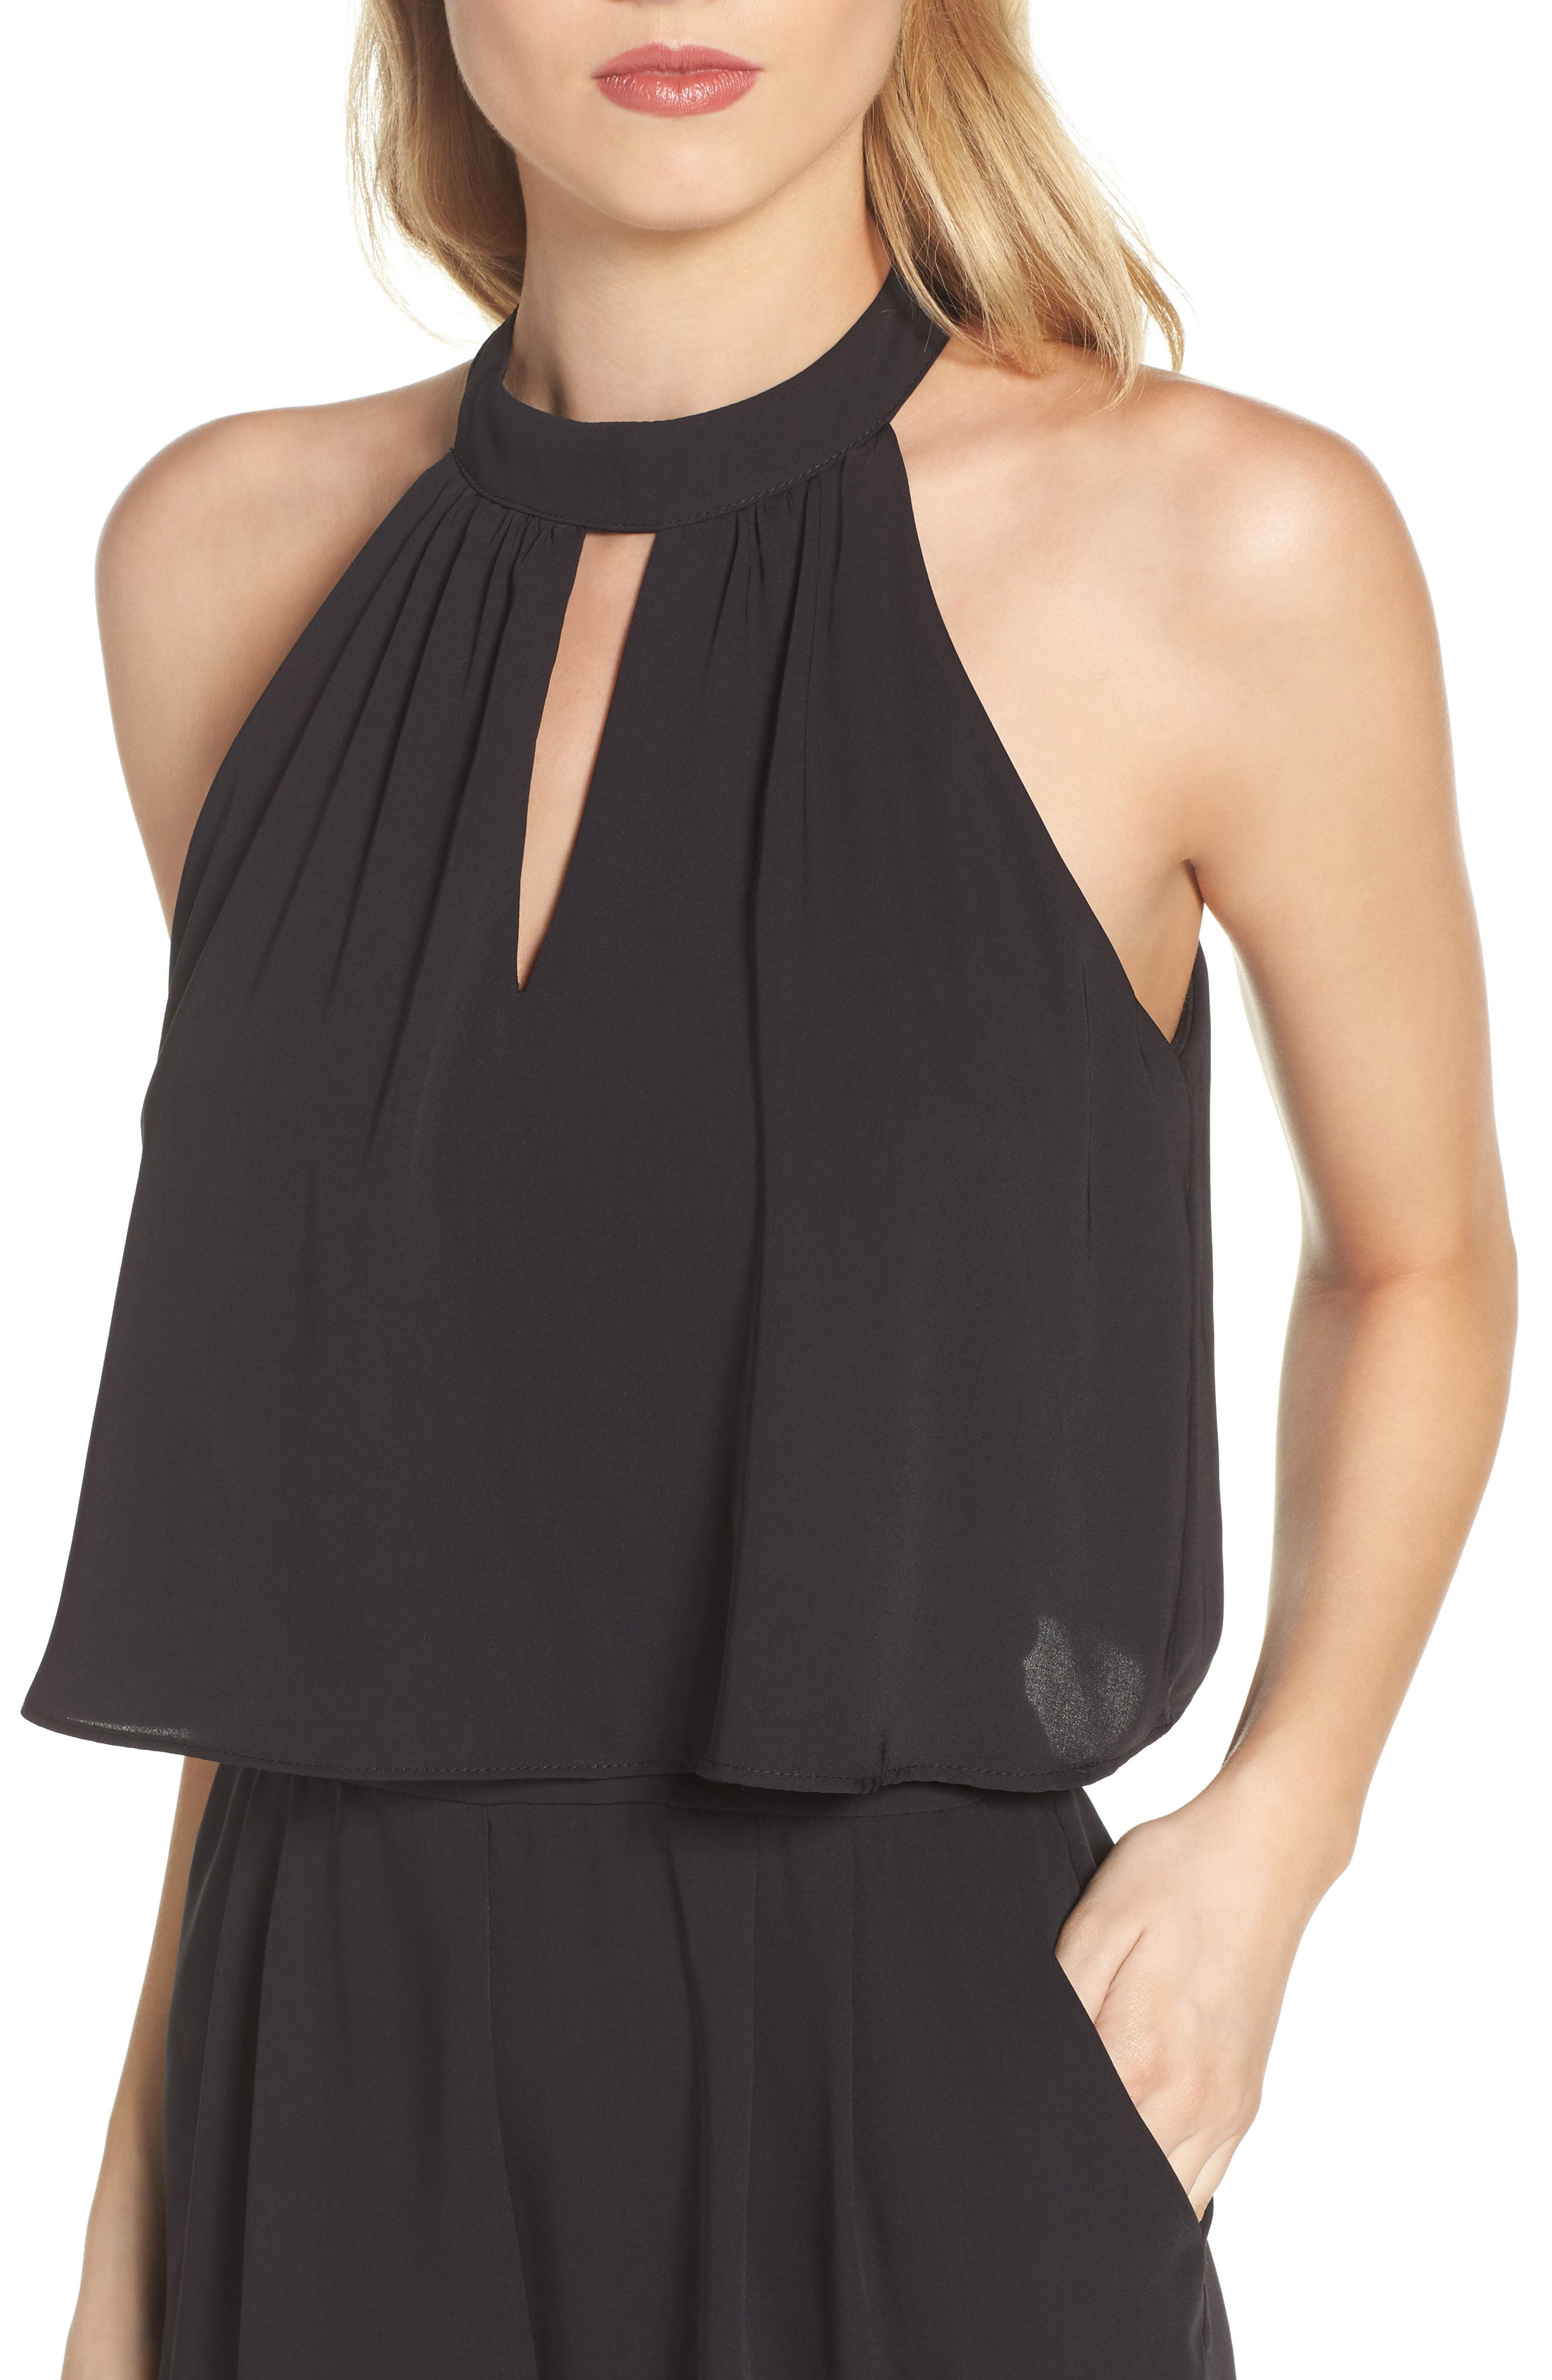 Nayden Popover Jumpsuit,                             Alternate thumbnail 4, color,                             Black